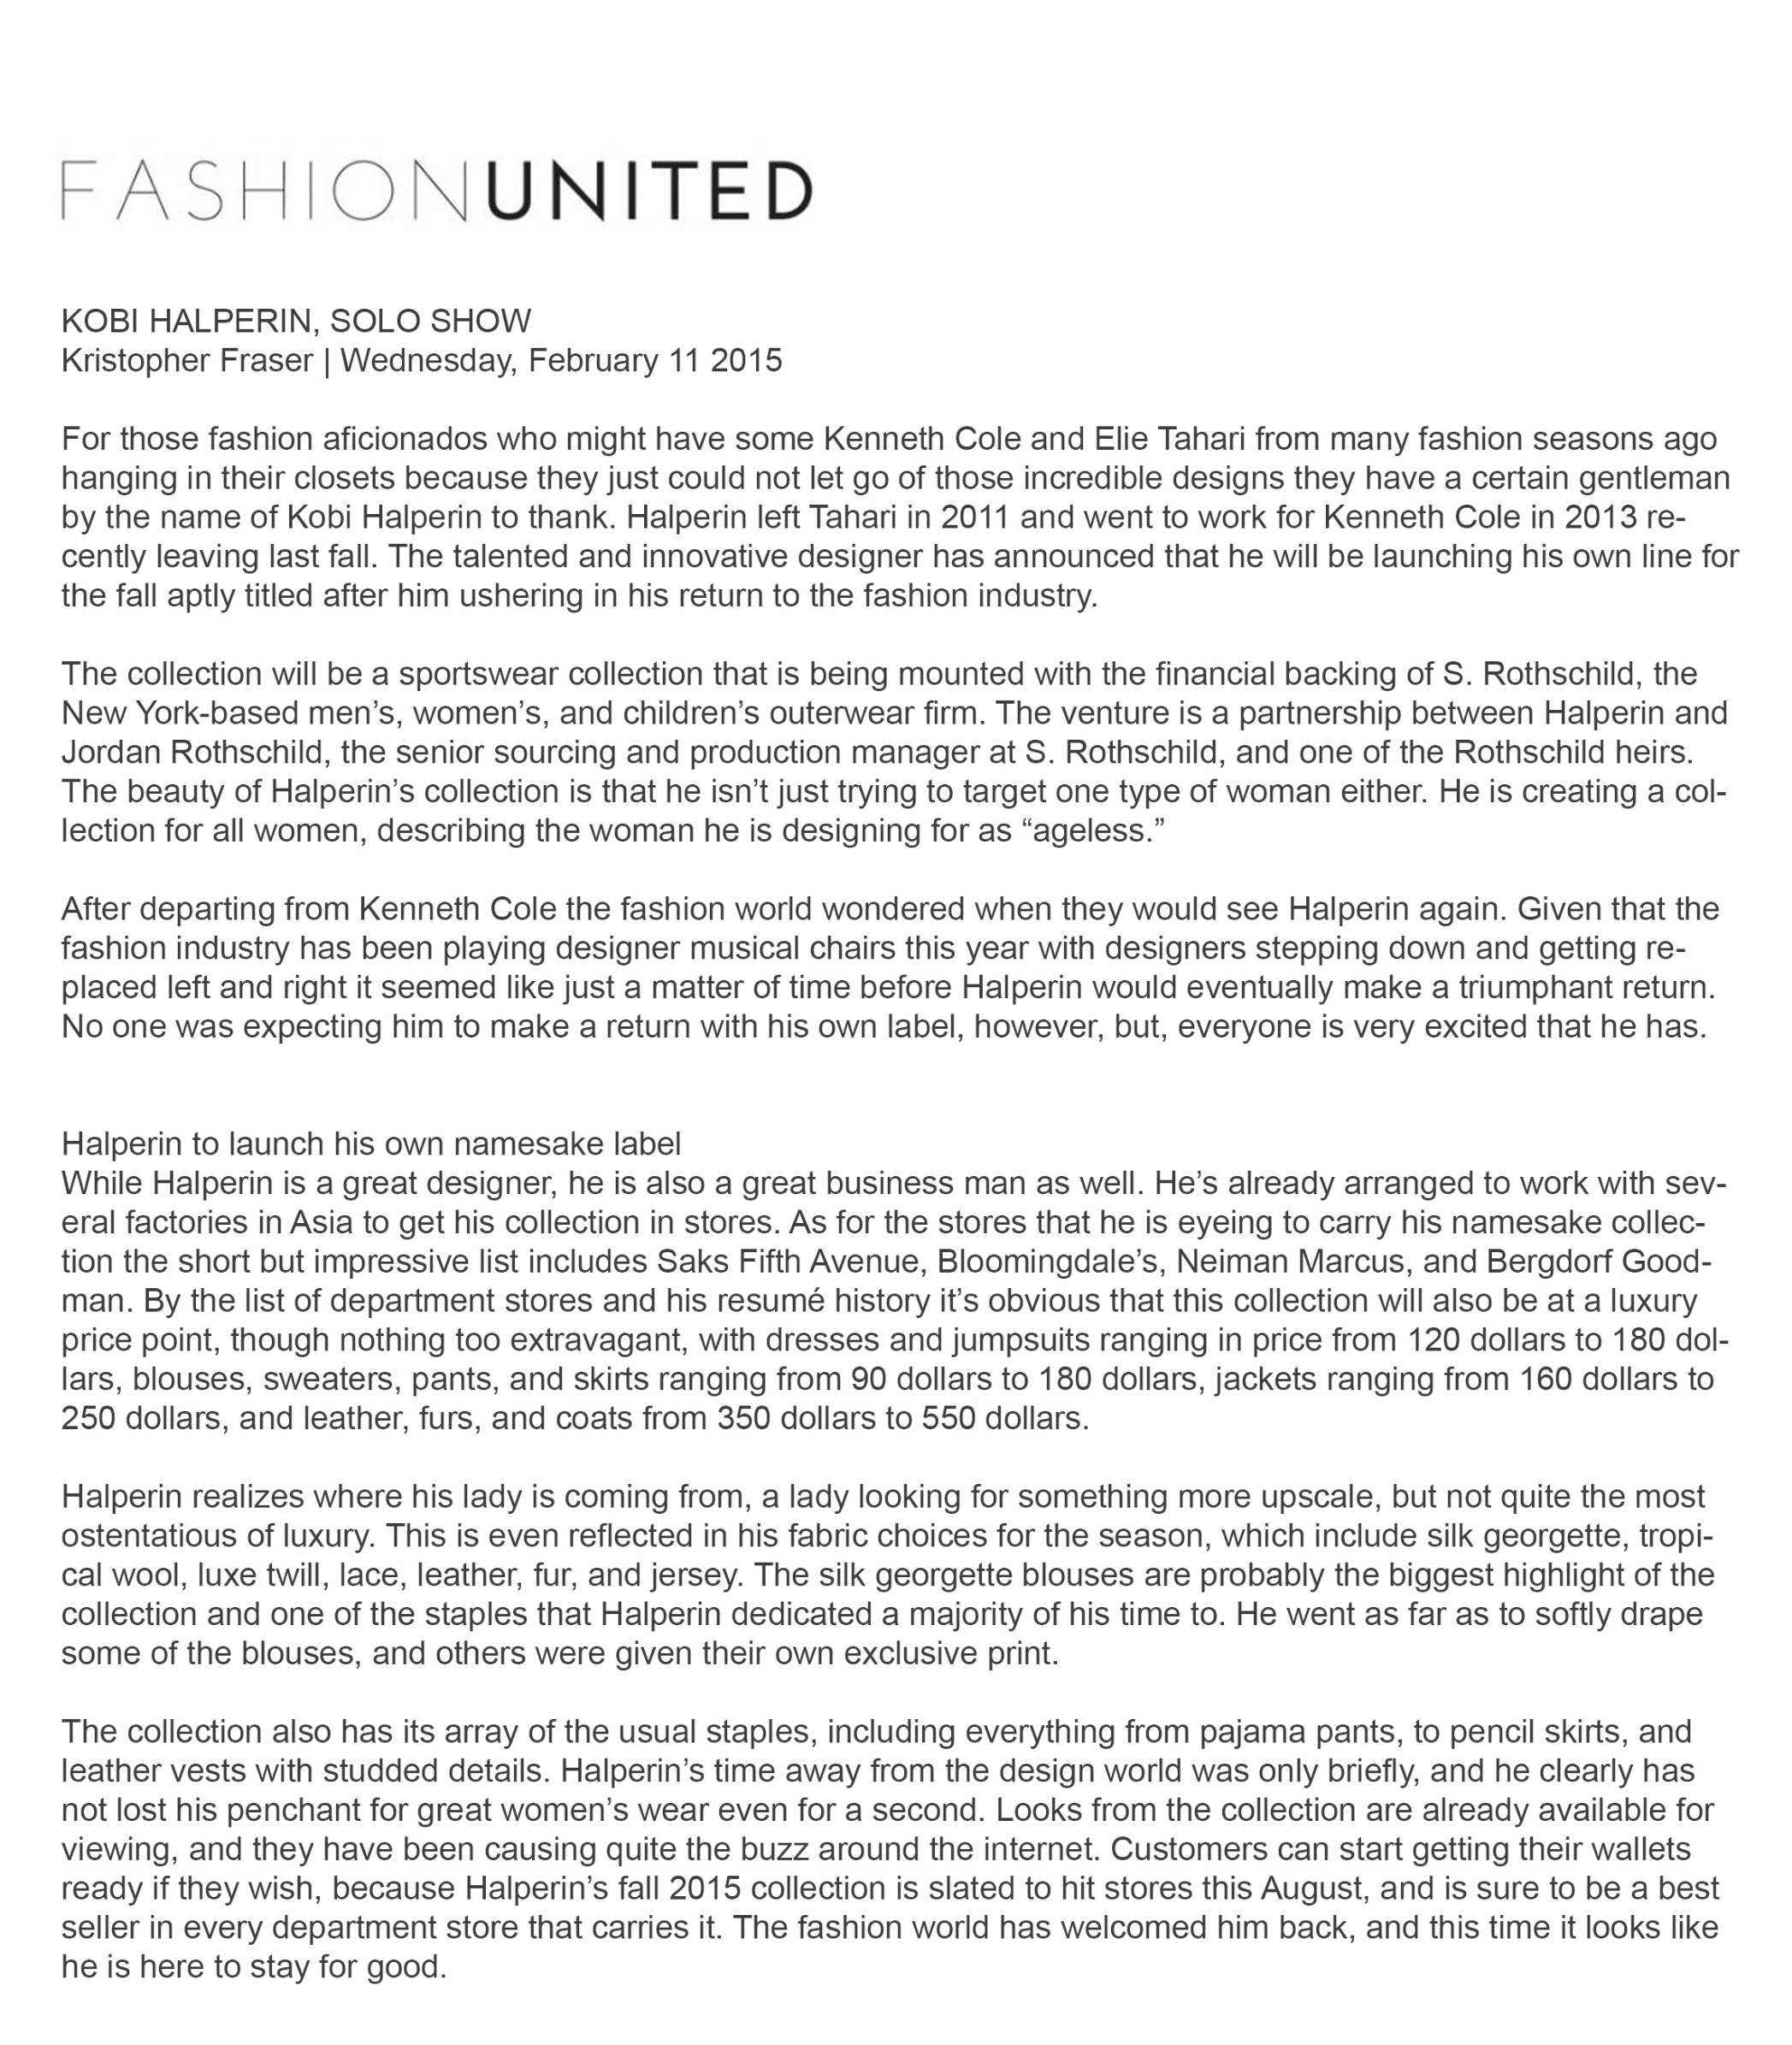 FASHION UNITED - FEBRUARY 2015